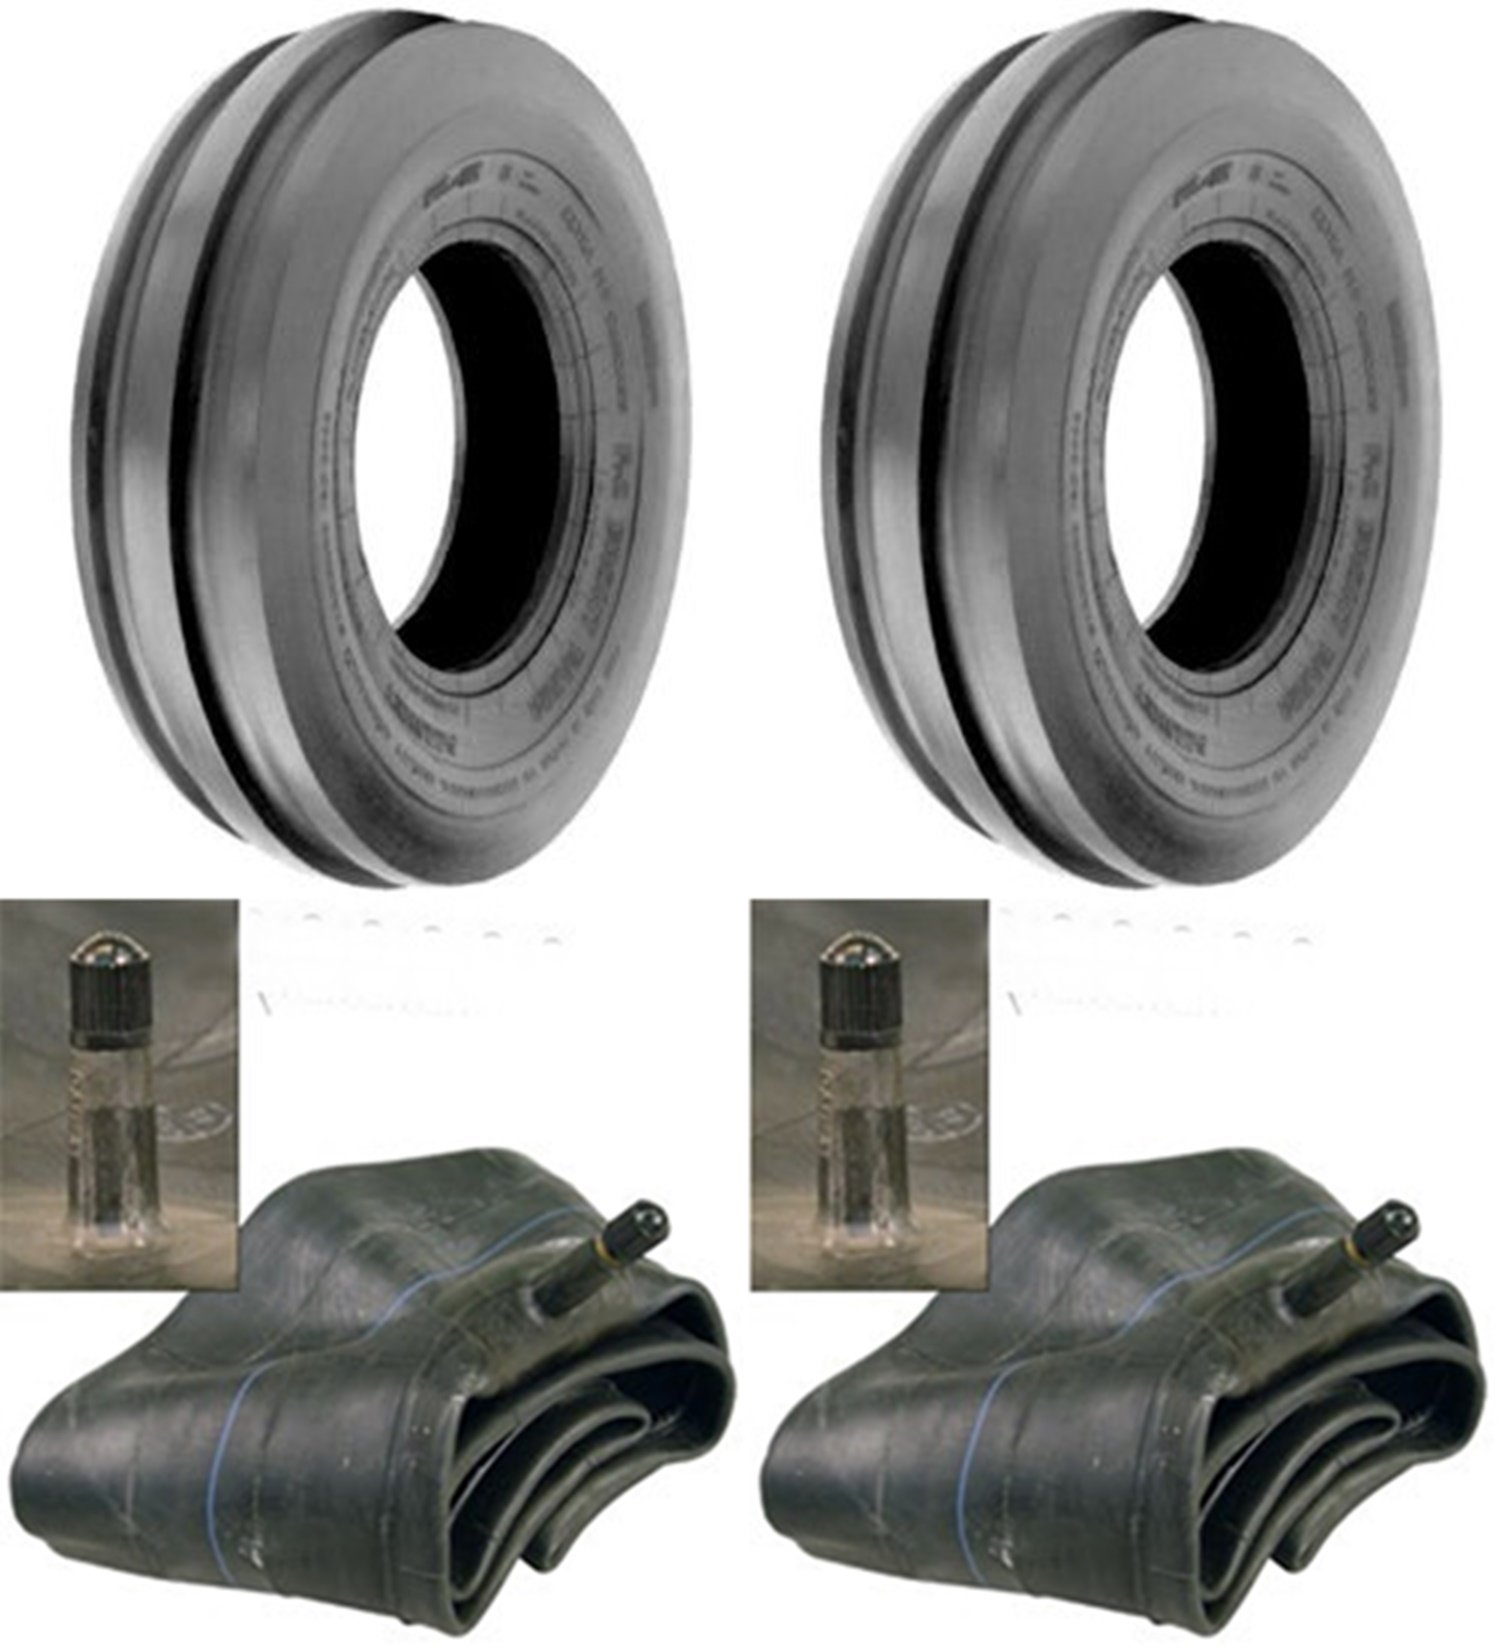 LOT OF TWO (2) 4.00-19 4.00x19 Tri Rib (3 Rib) Tires with Tubes HEAVY DUTY 6 PLY Rated by Tire Geek